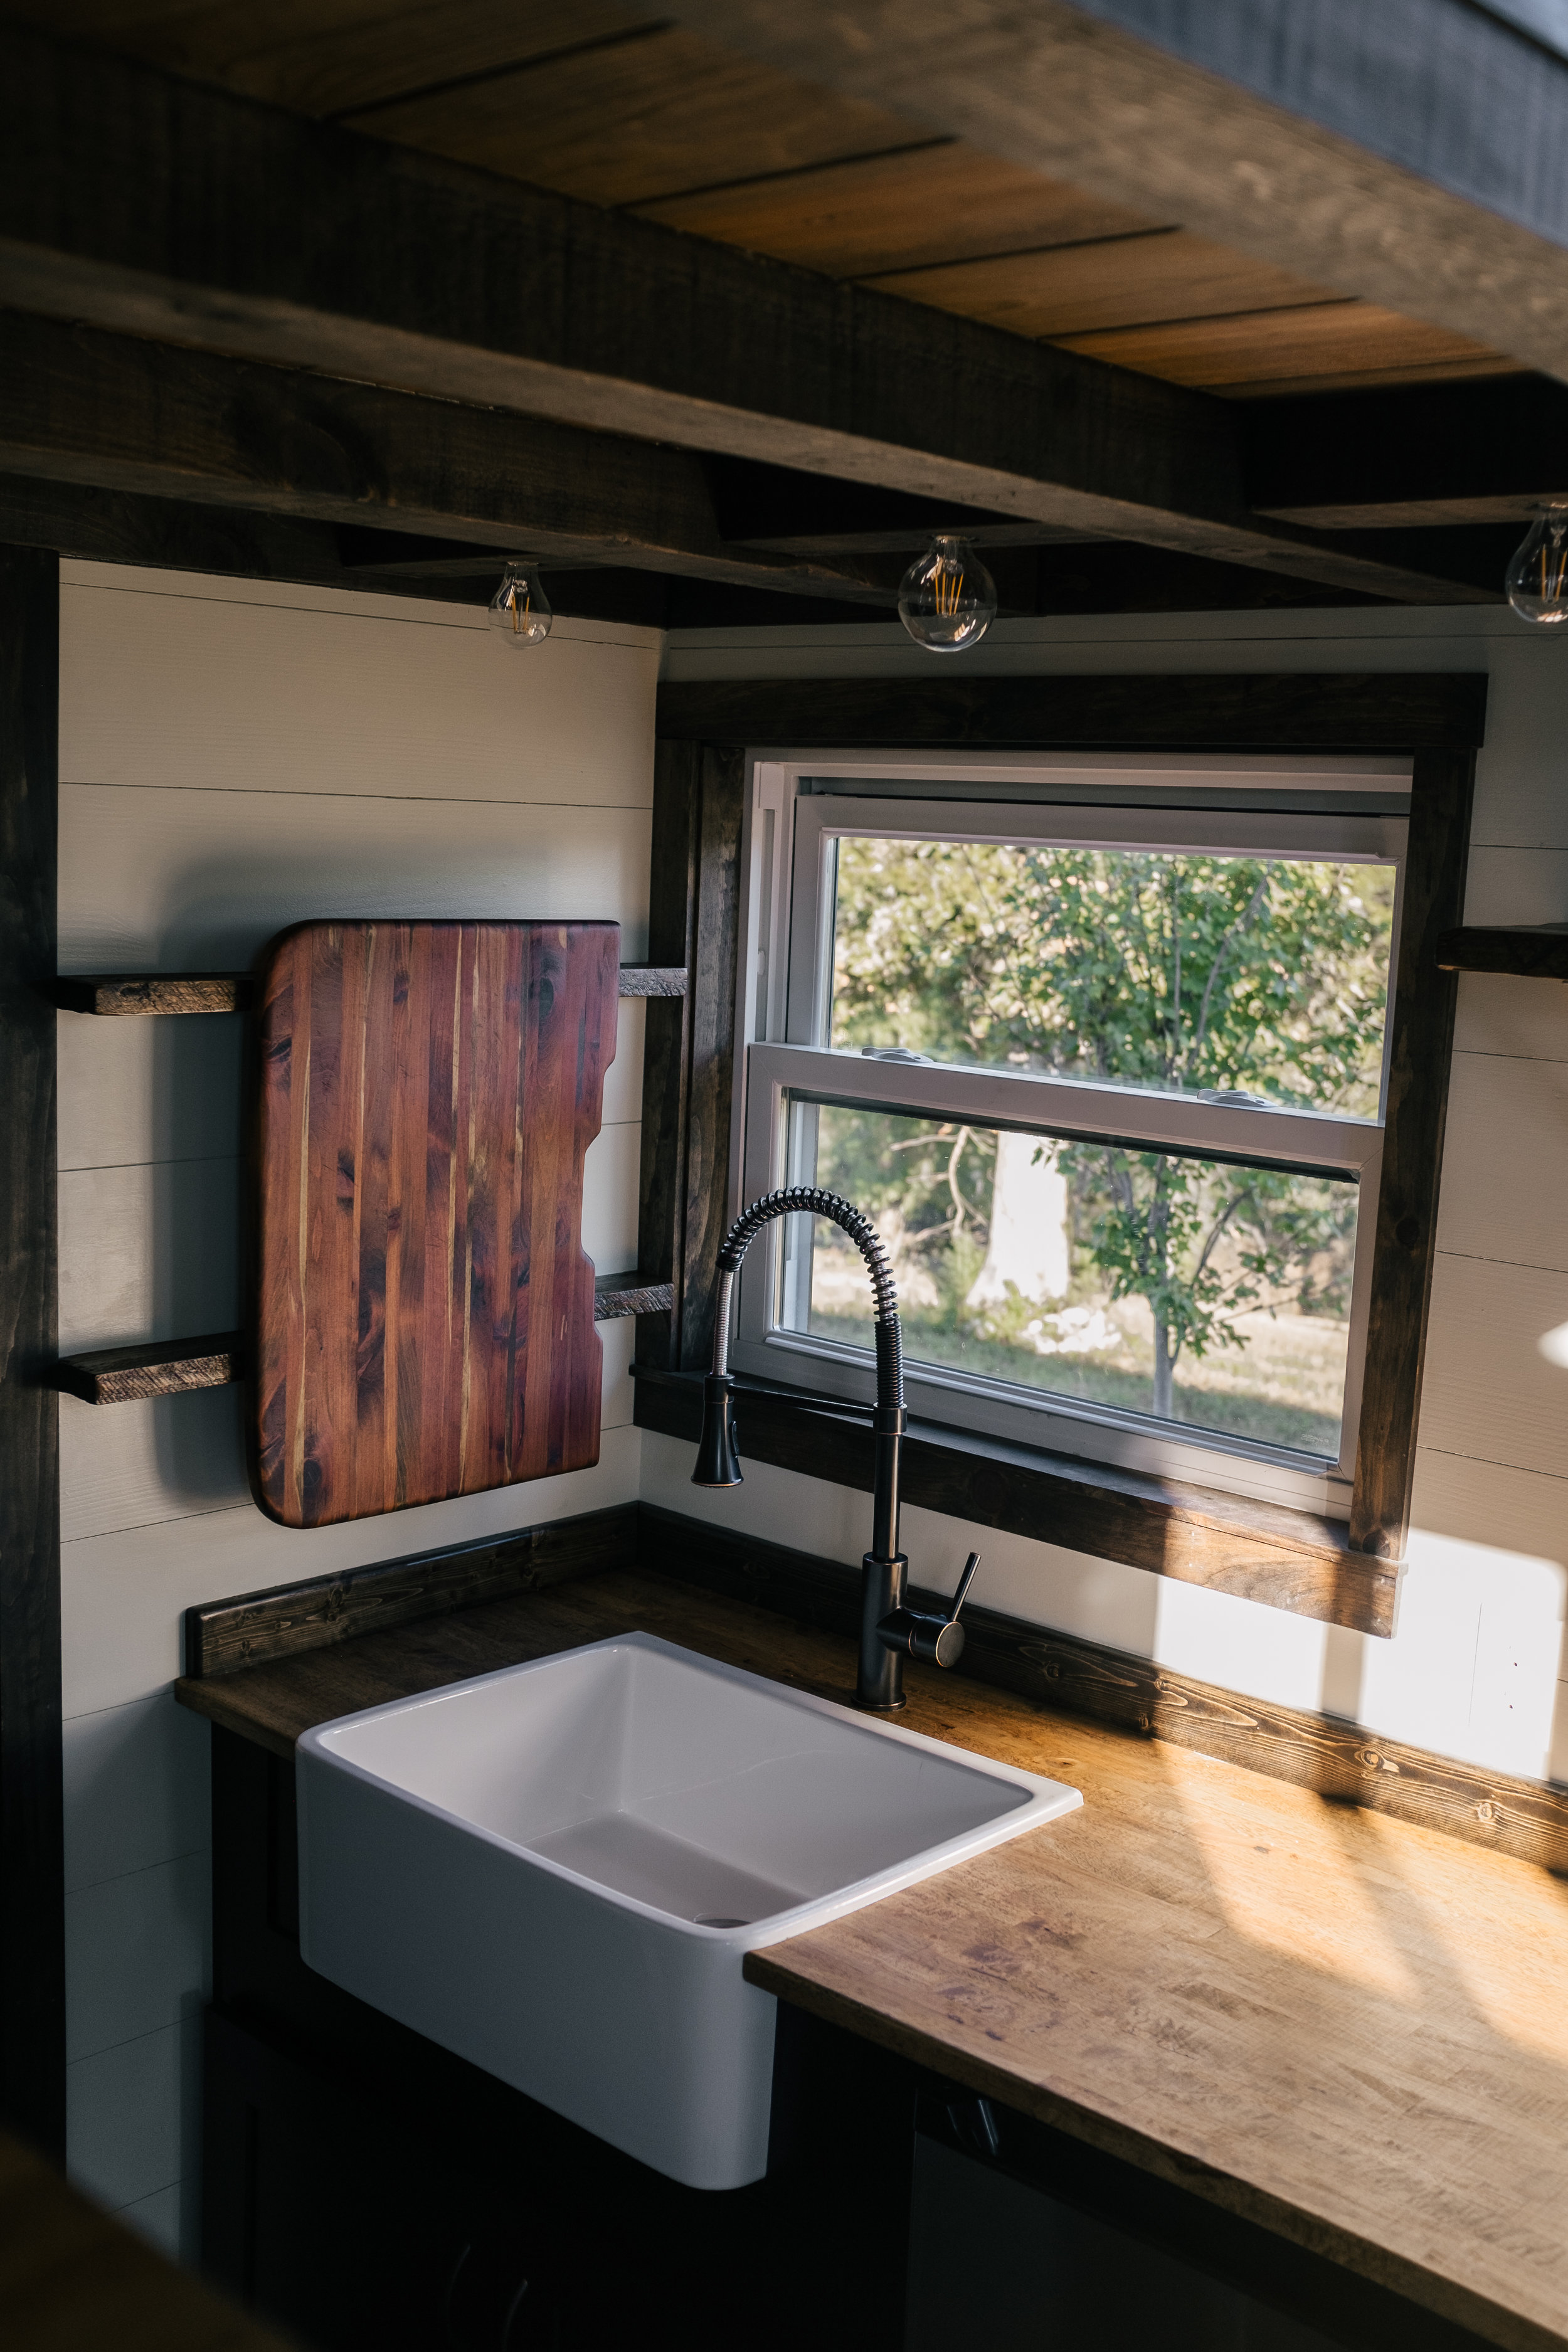 The Silhouette by Wind River Tiny Homes -shaker style cabinets, open kitchen shelving, under cabinet fridge, farmhouse sink, butcher block, cedar sink cutting board